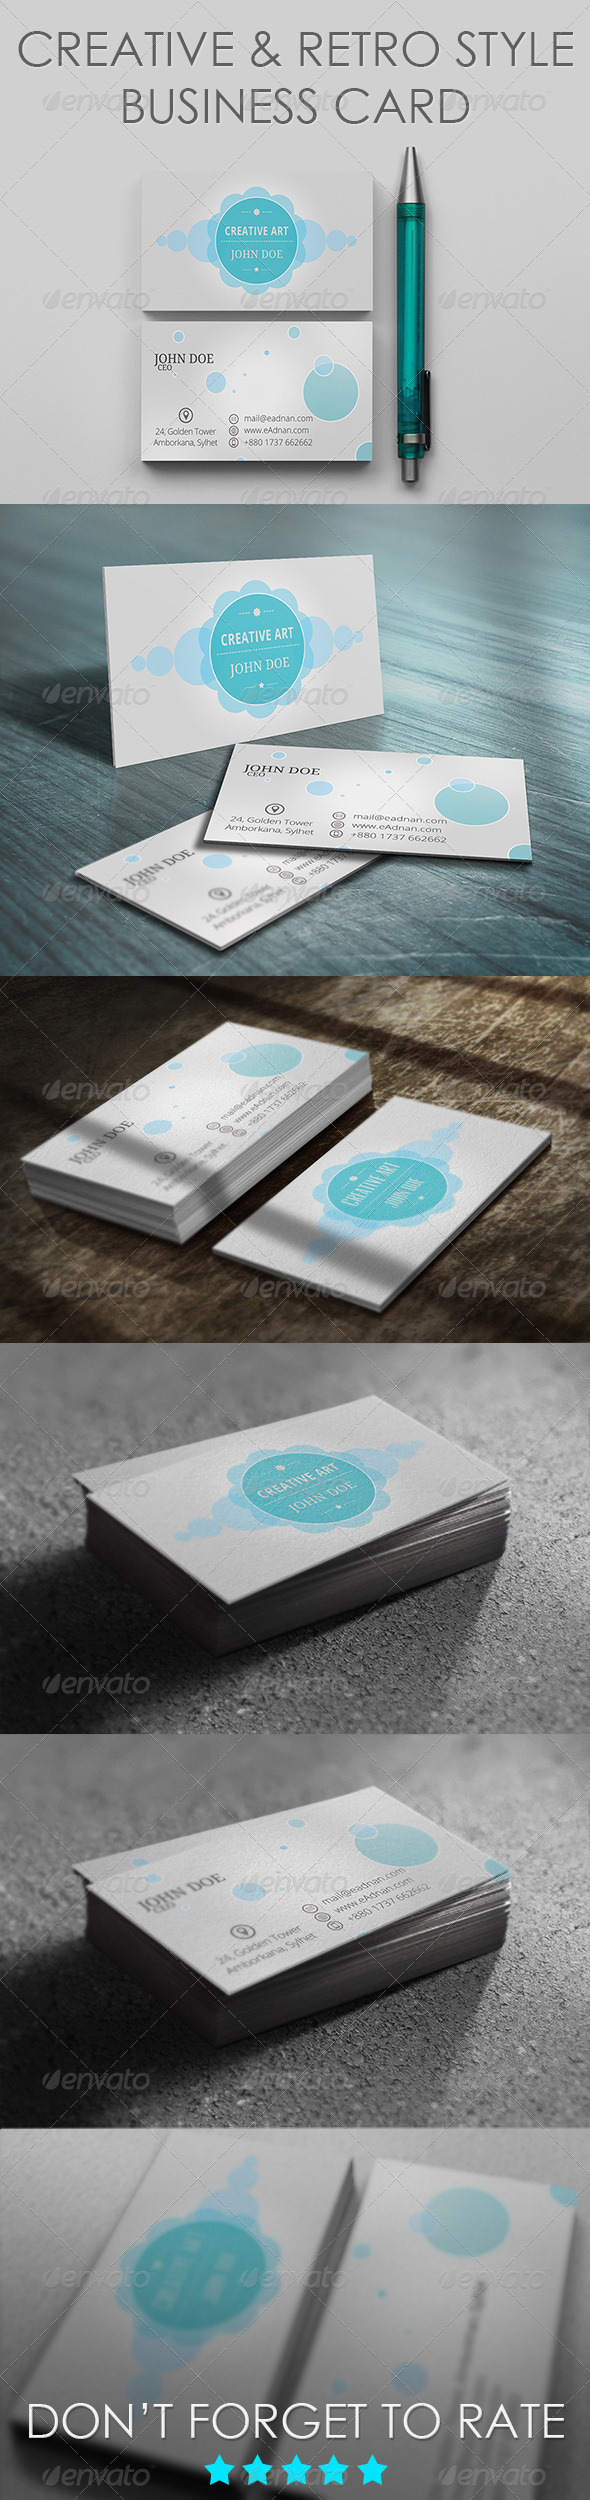 Creative & Retro Style Business Card